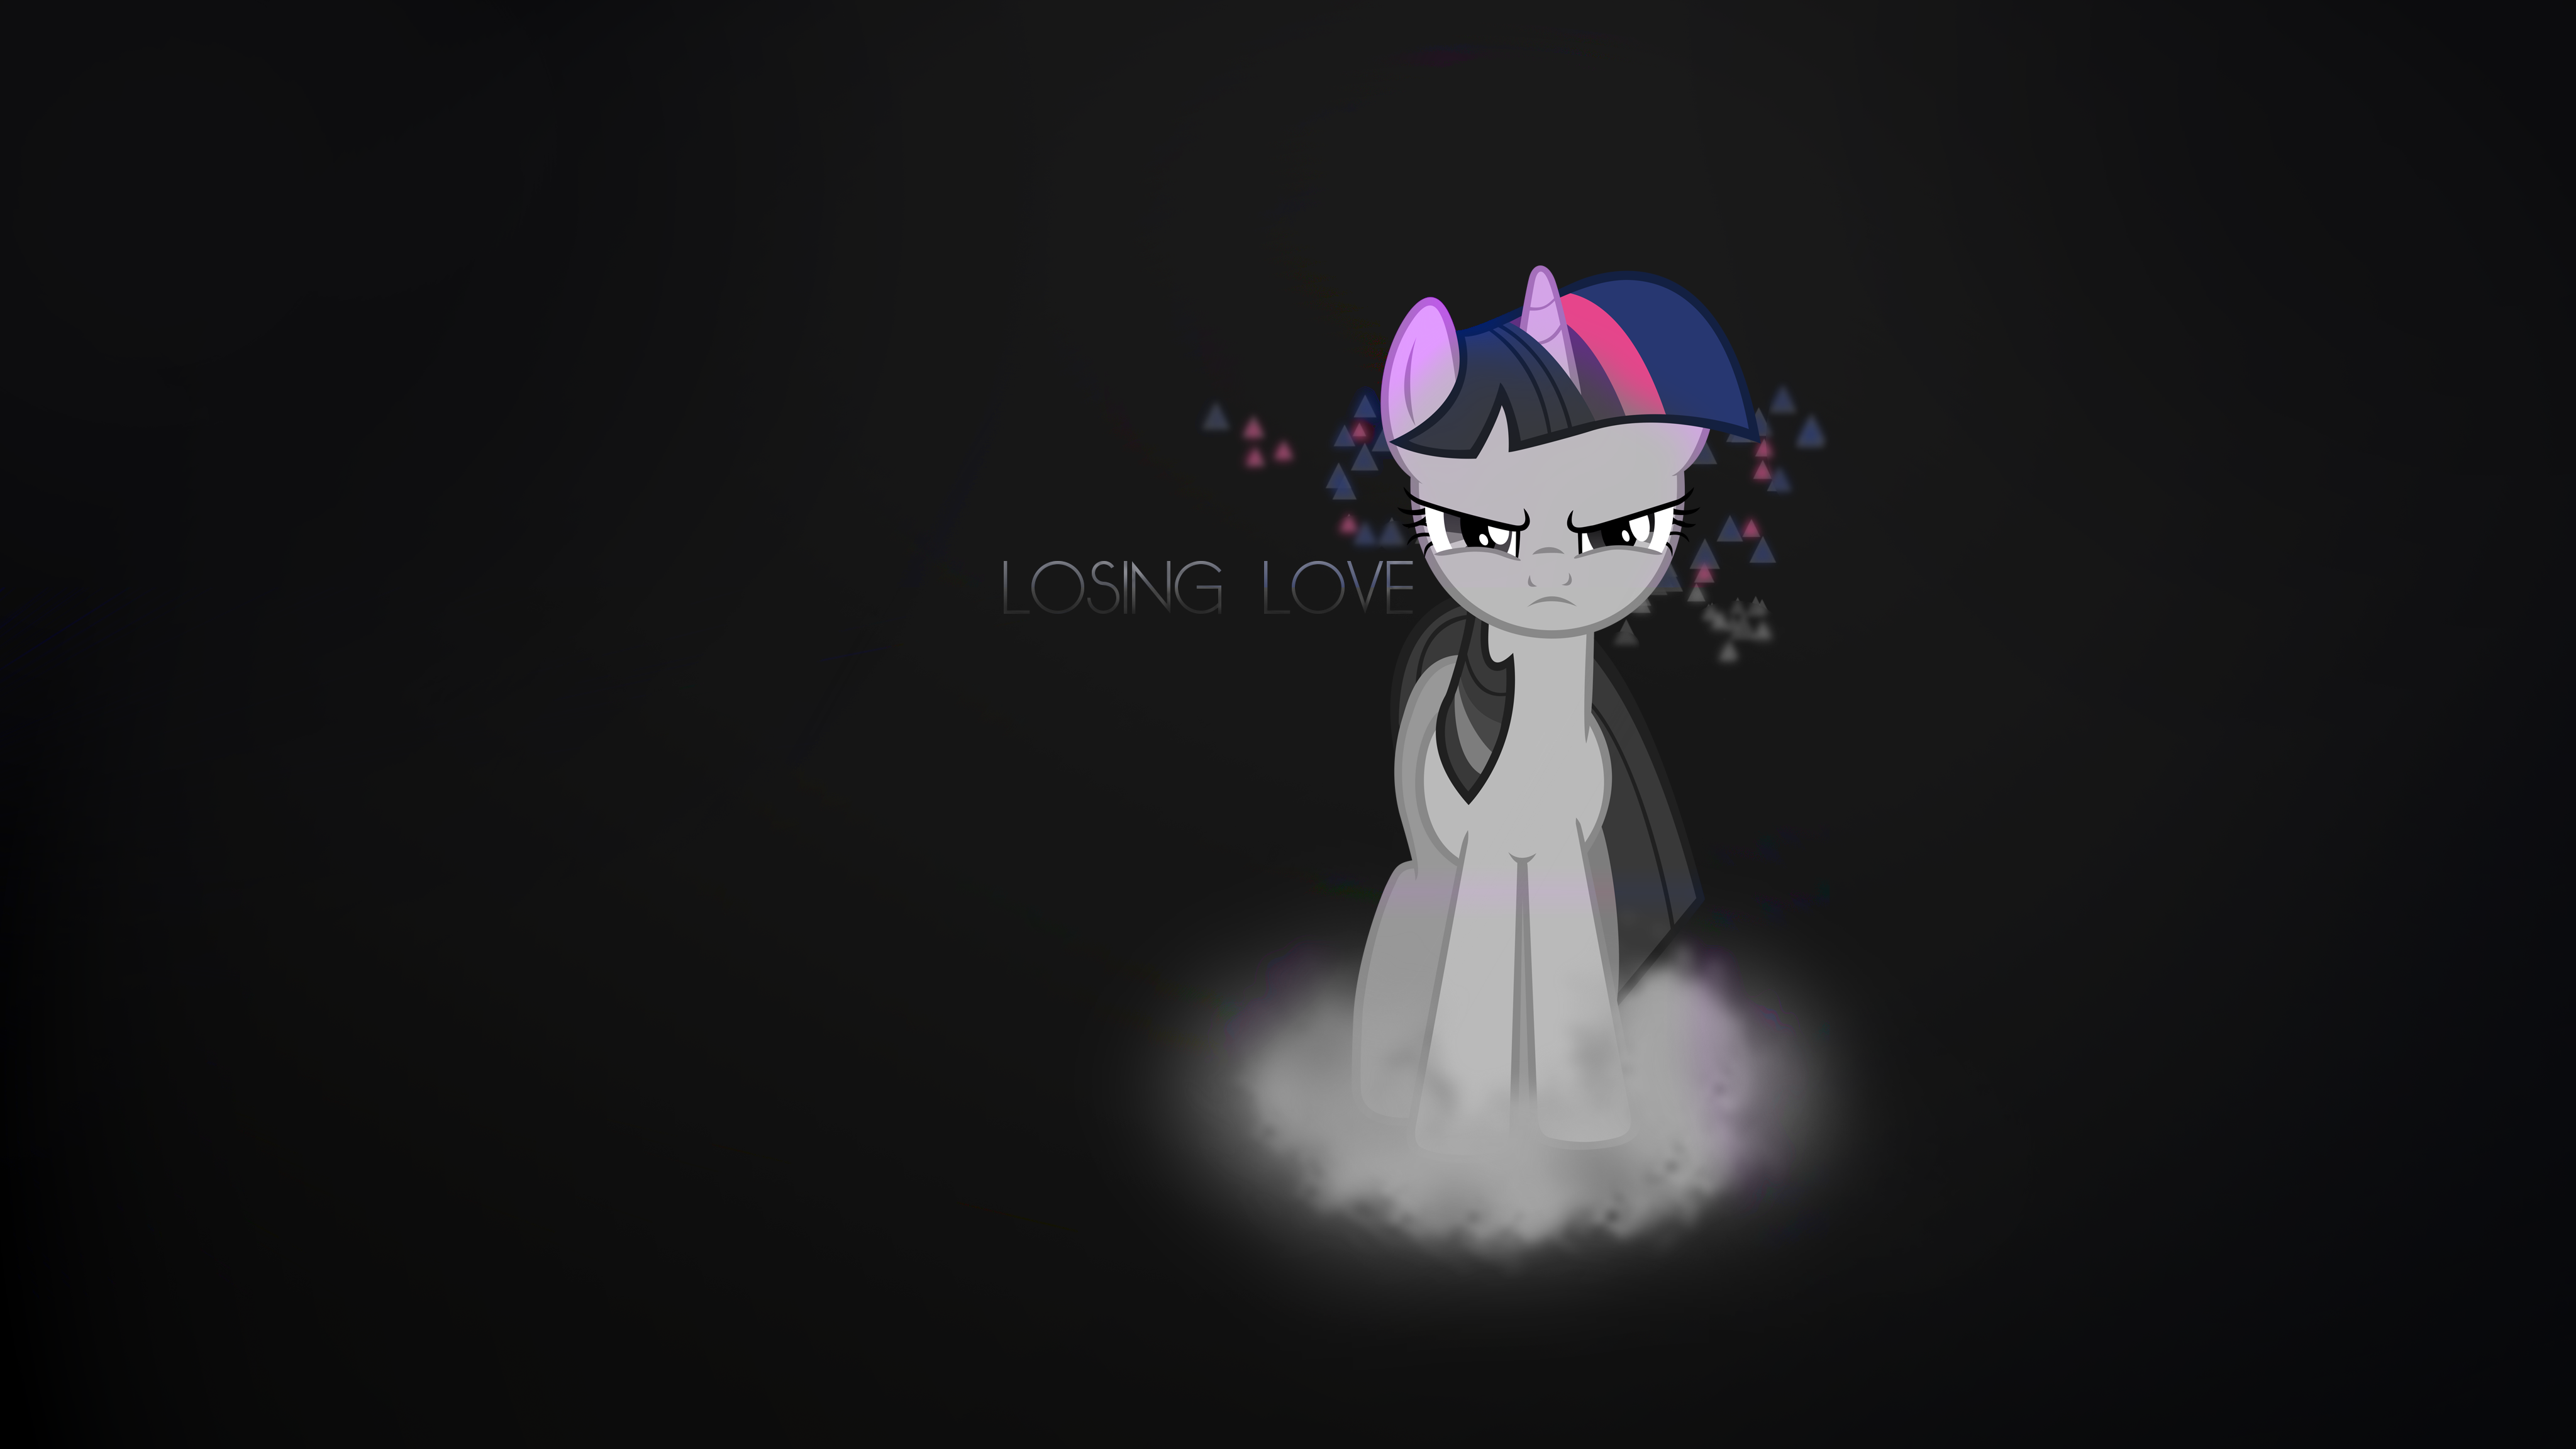 Twilight losing love wallpaper 4k by nakan0i on deviantart - I love you 4k ...